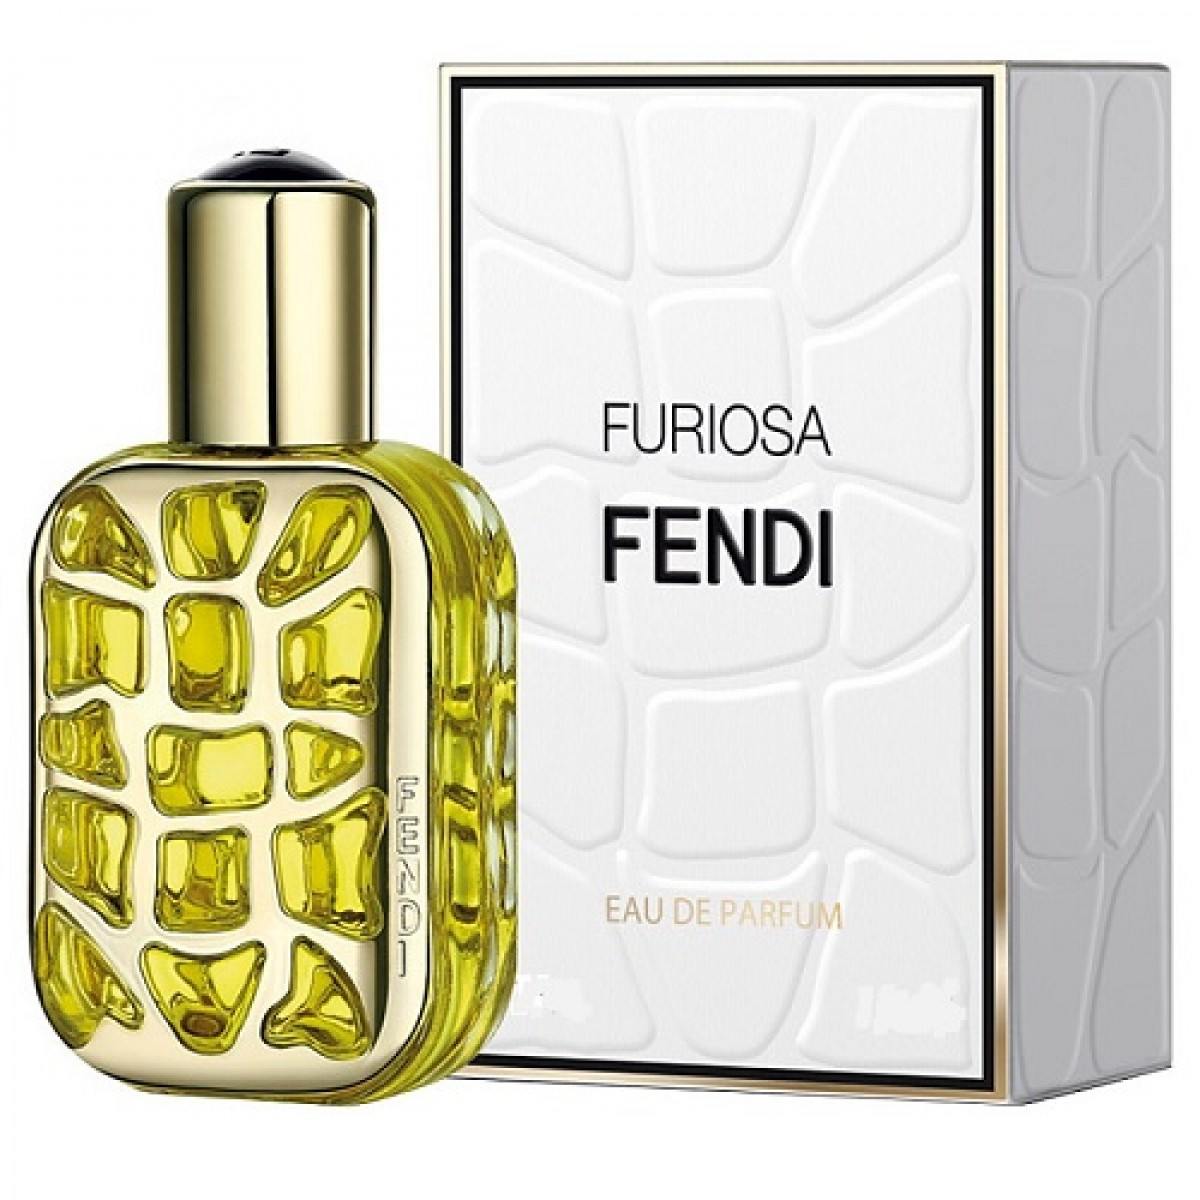 fendi-furiosa-edp-100ml-perfume-women-nigeria